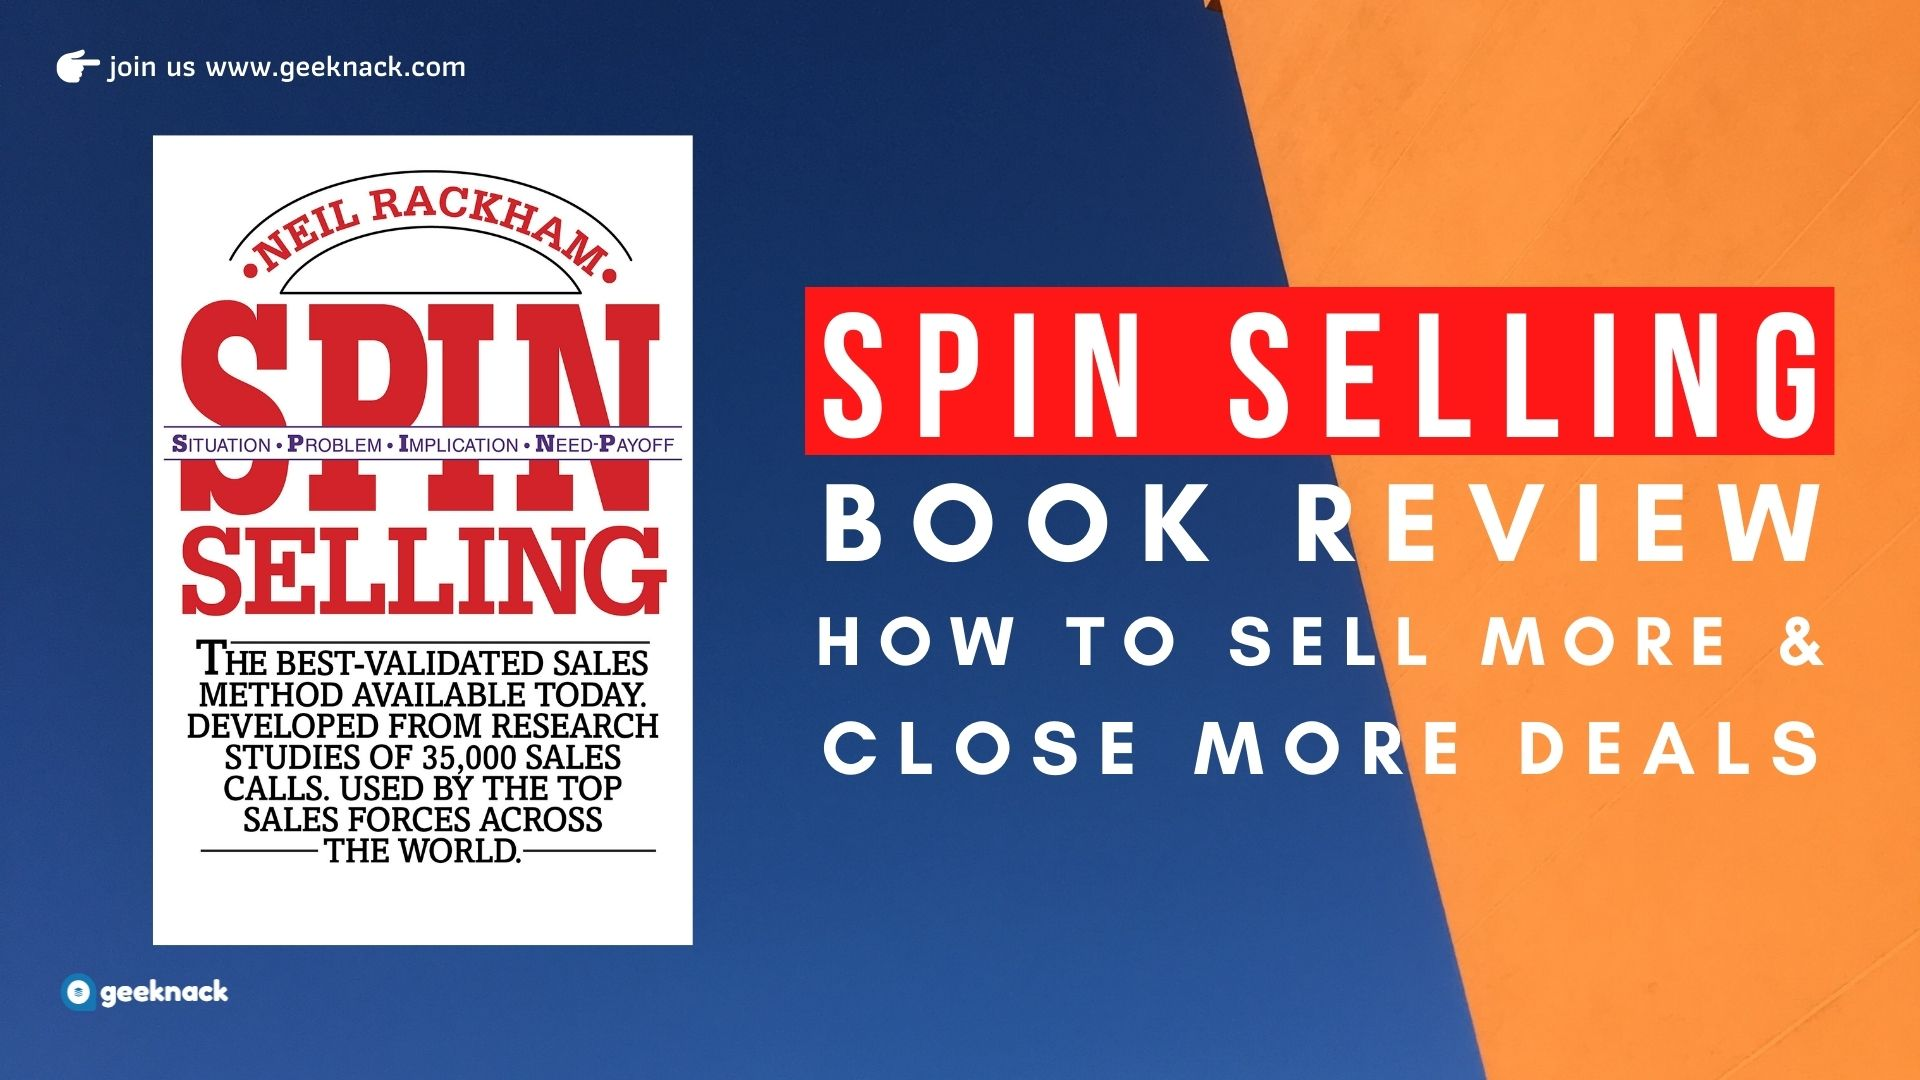 SPIN Selling Book Review How to Sell More & Close More Deals